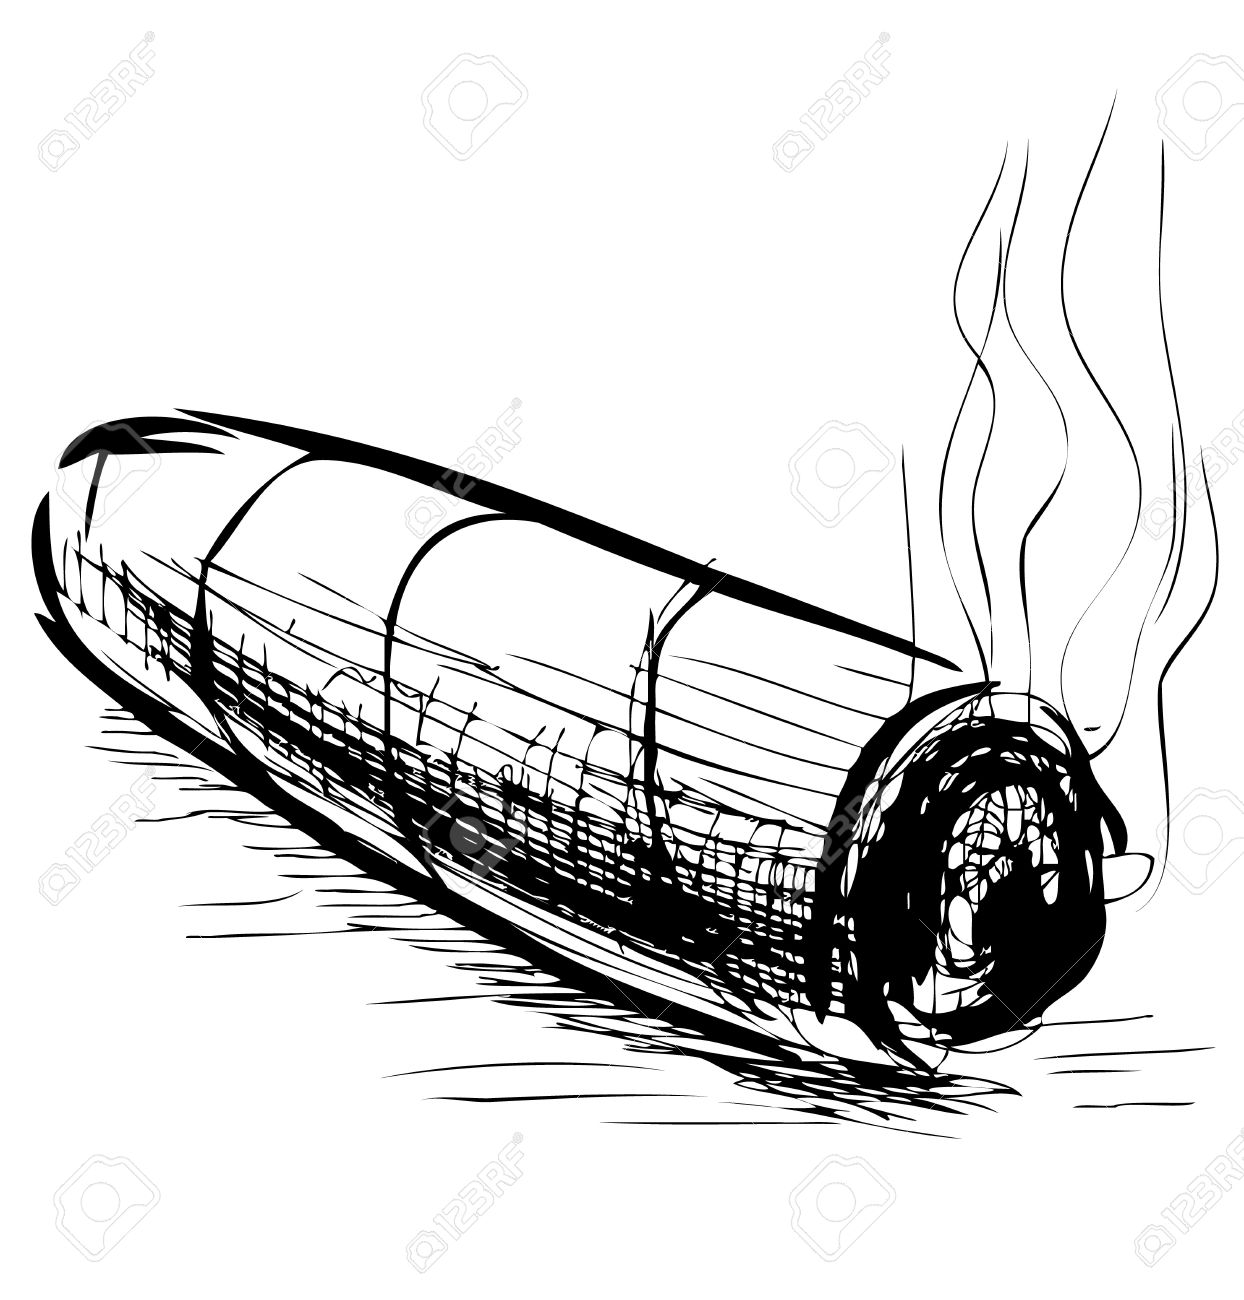 Cigar clipart black and white 7 » Clipart Station.